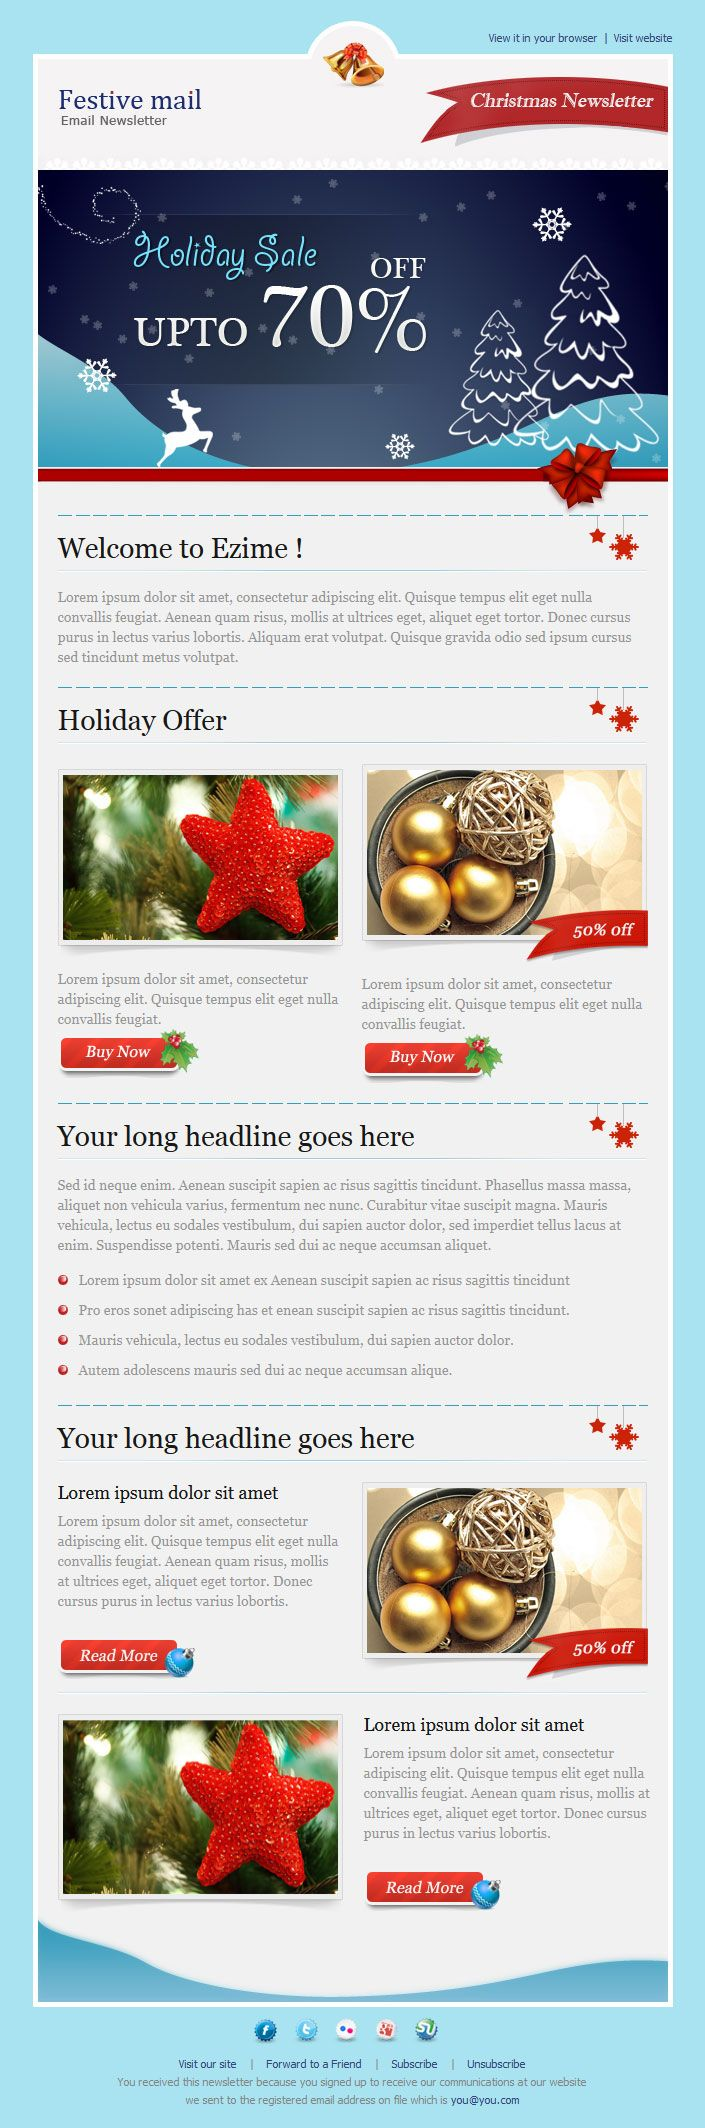 Best Content Heavy Digital Design Images On   Email